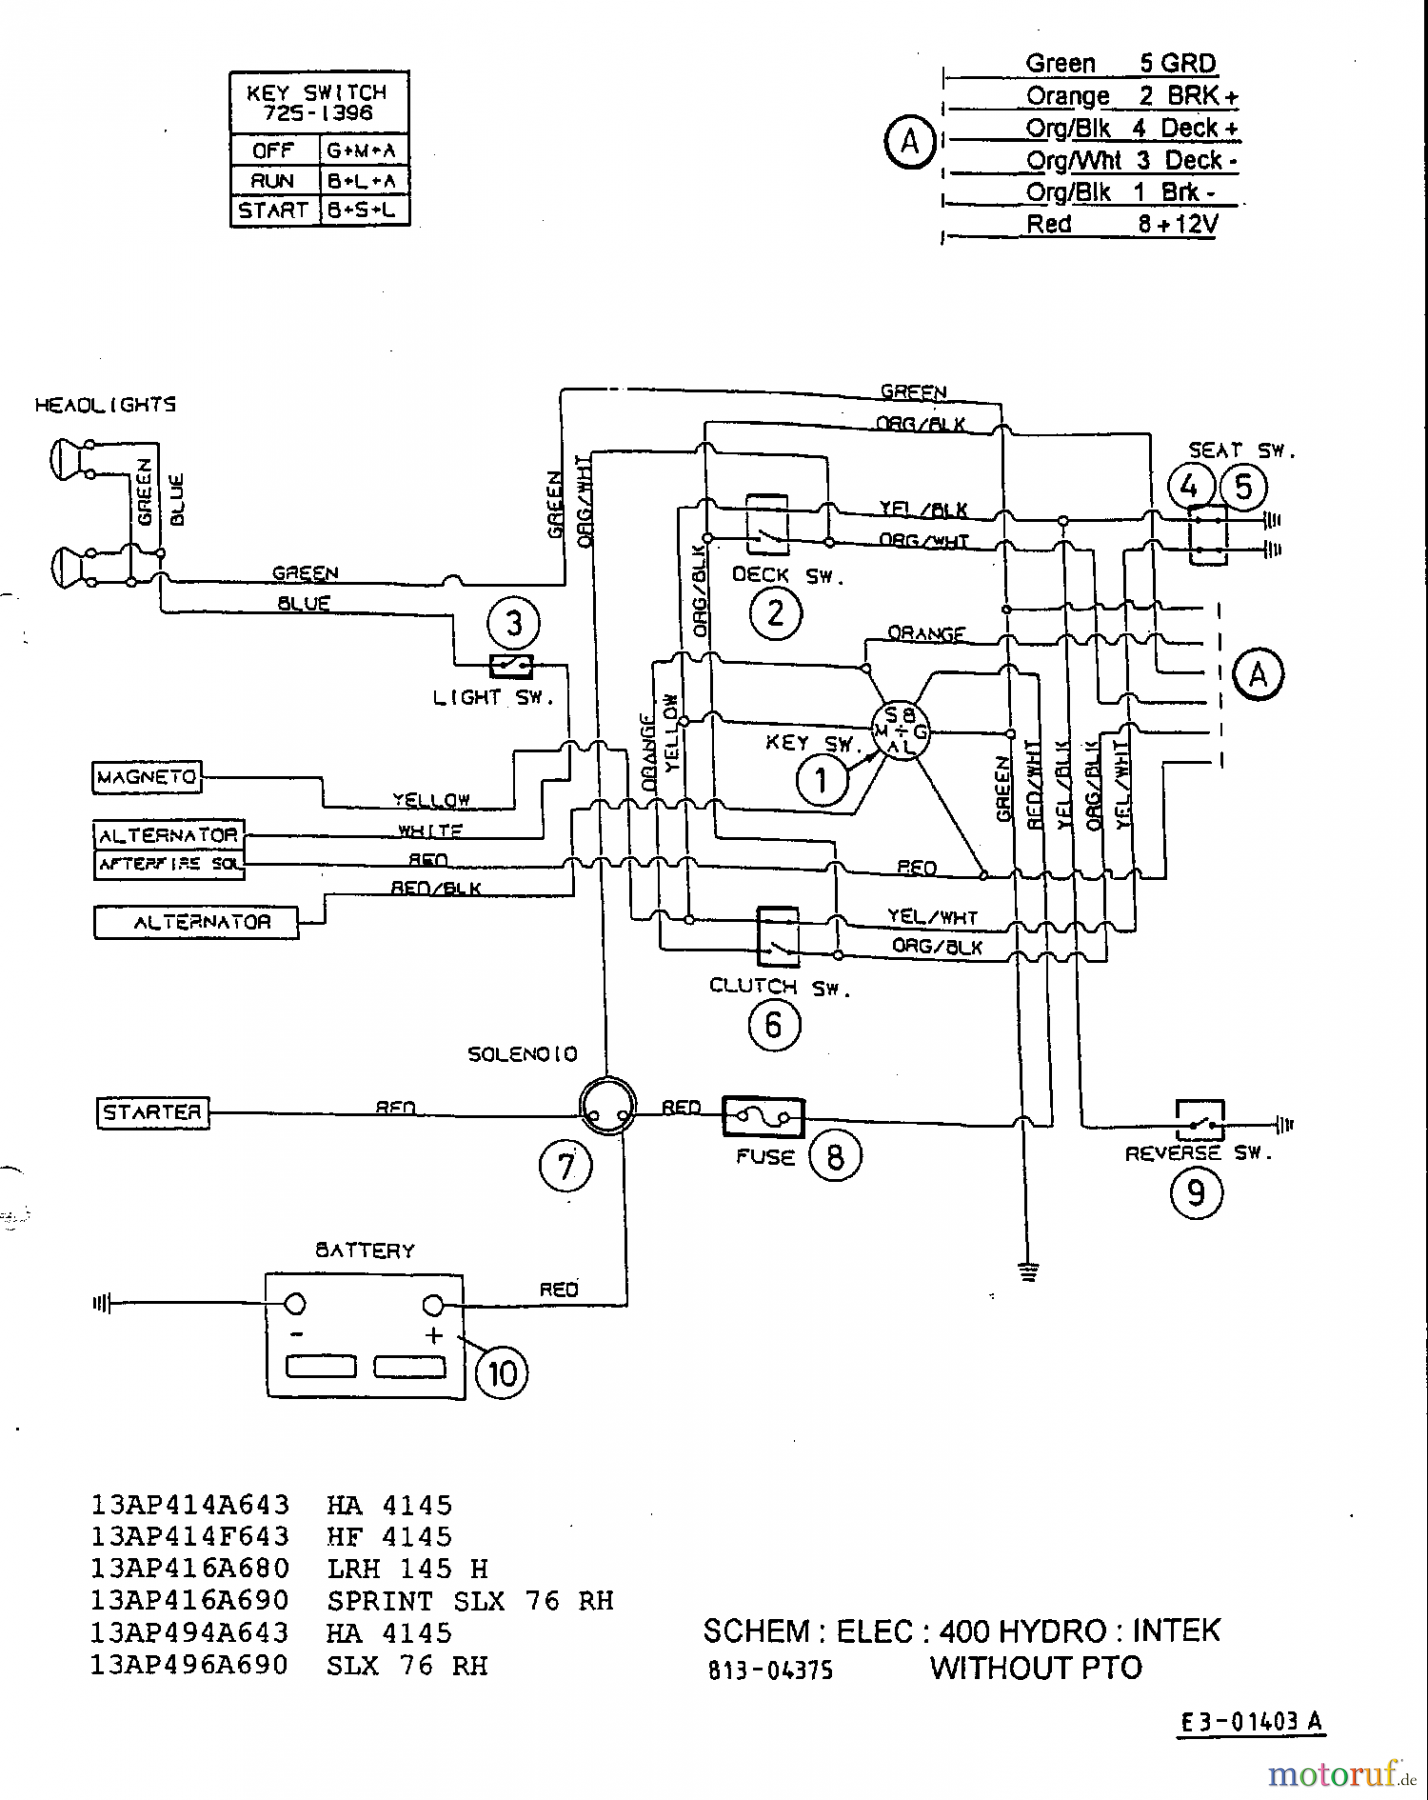 Mtd Yardman Wiring Diagram Library And Parts List For Ridingmowertractorparts Model 760 Riding Mower With Yard Machine On Dads